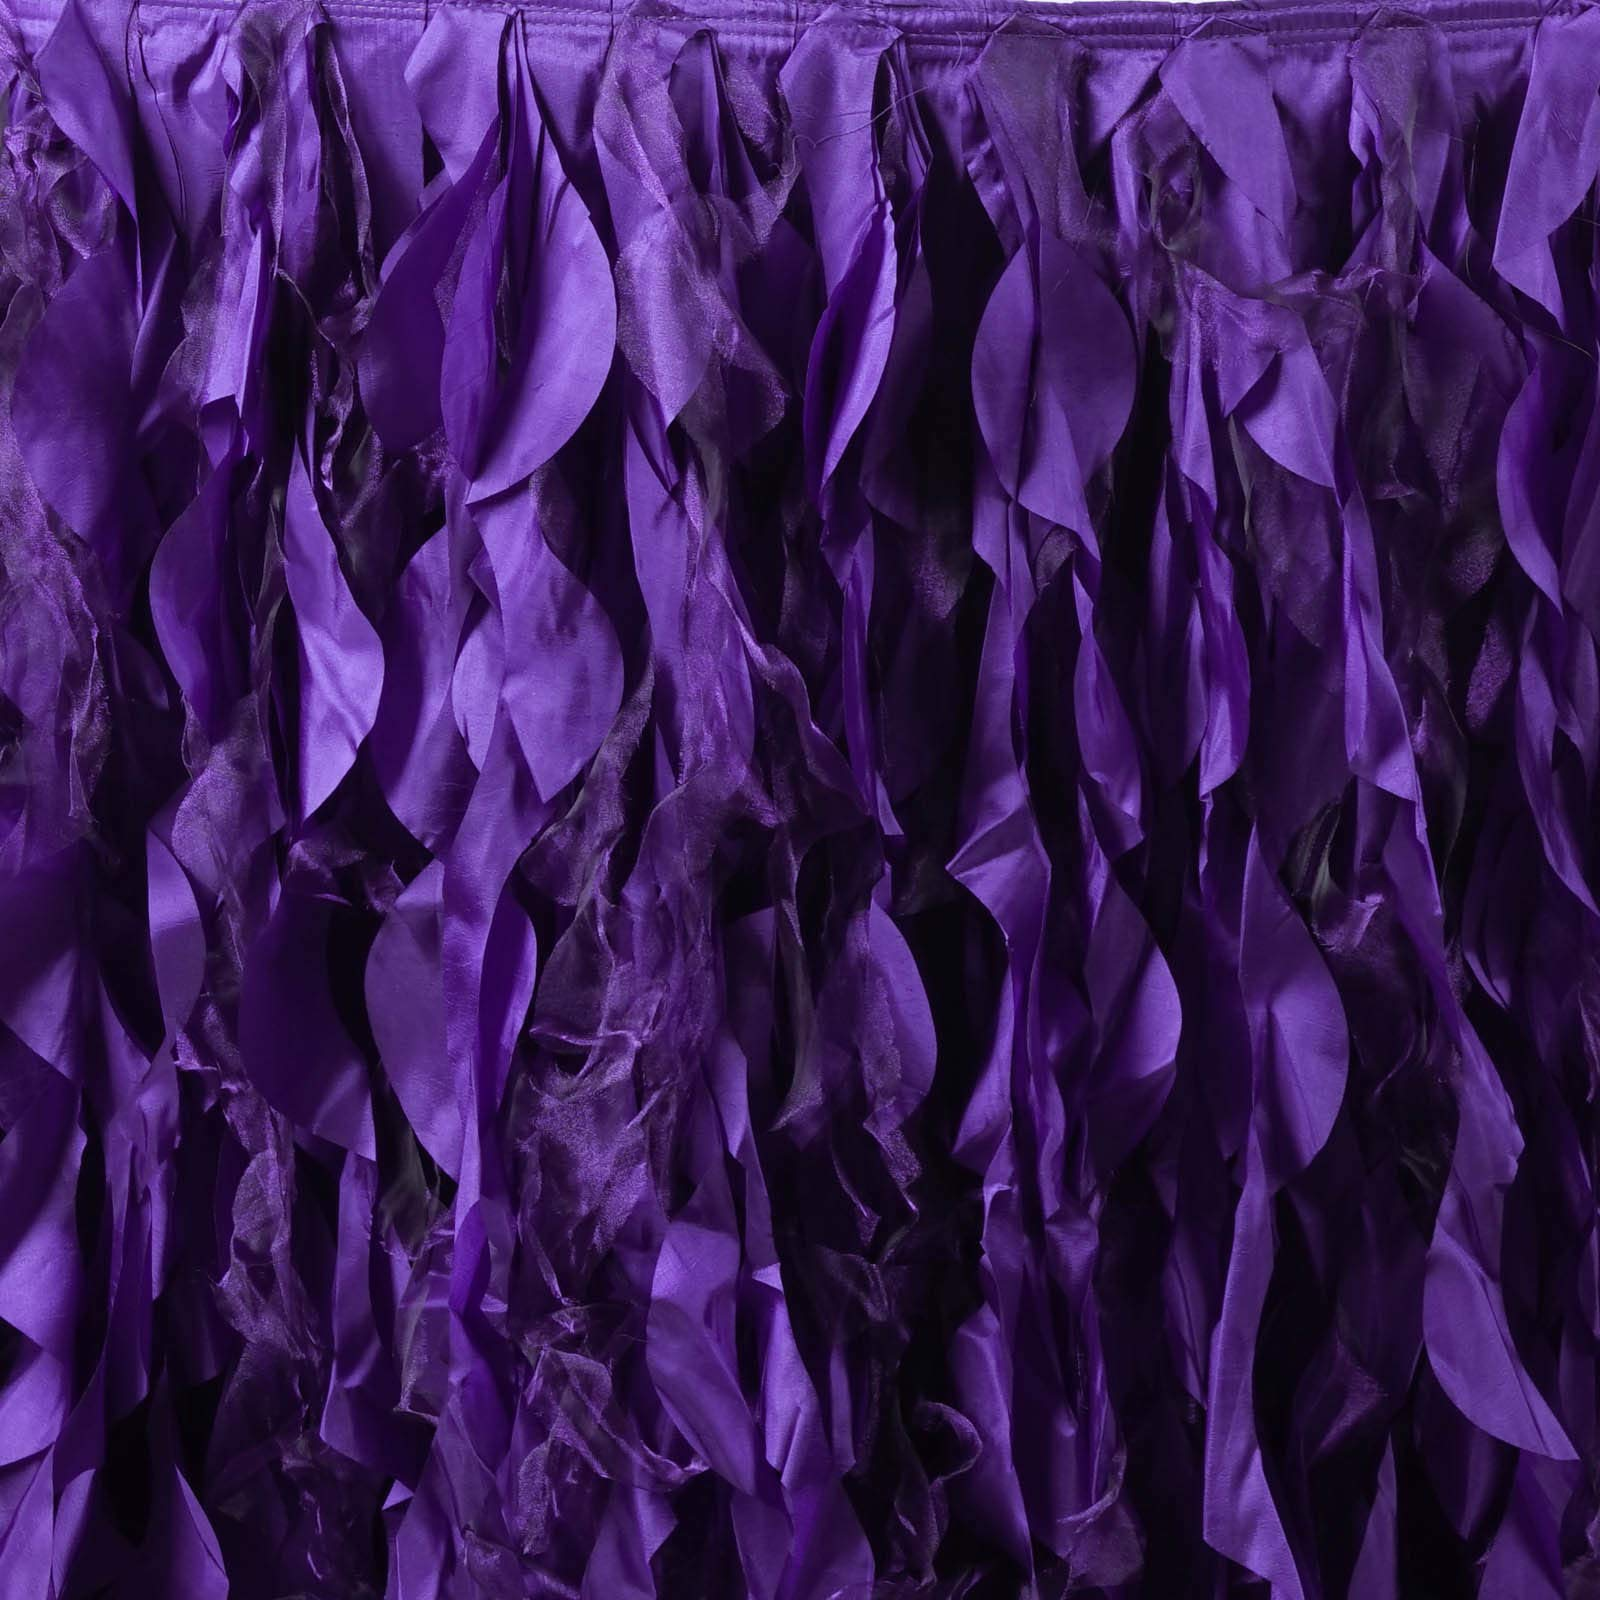 Efavormart 14ft Enchanting Curly Willow Taffeta Table Skirt for Kitchen Dining Catering Wedding Birthday Party Events - Purple by Efavormart.com (Image #3)